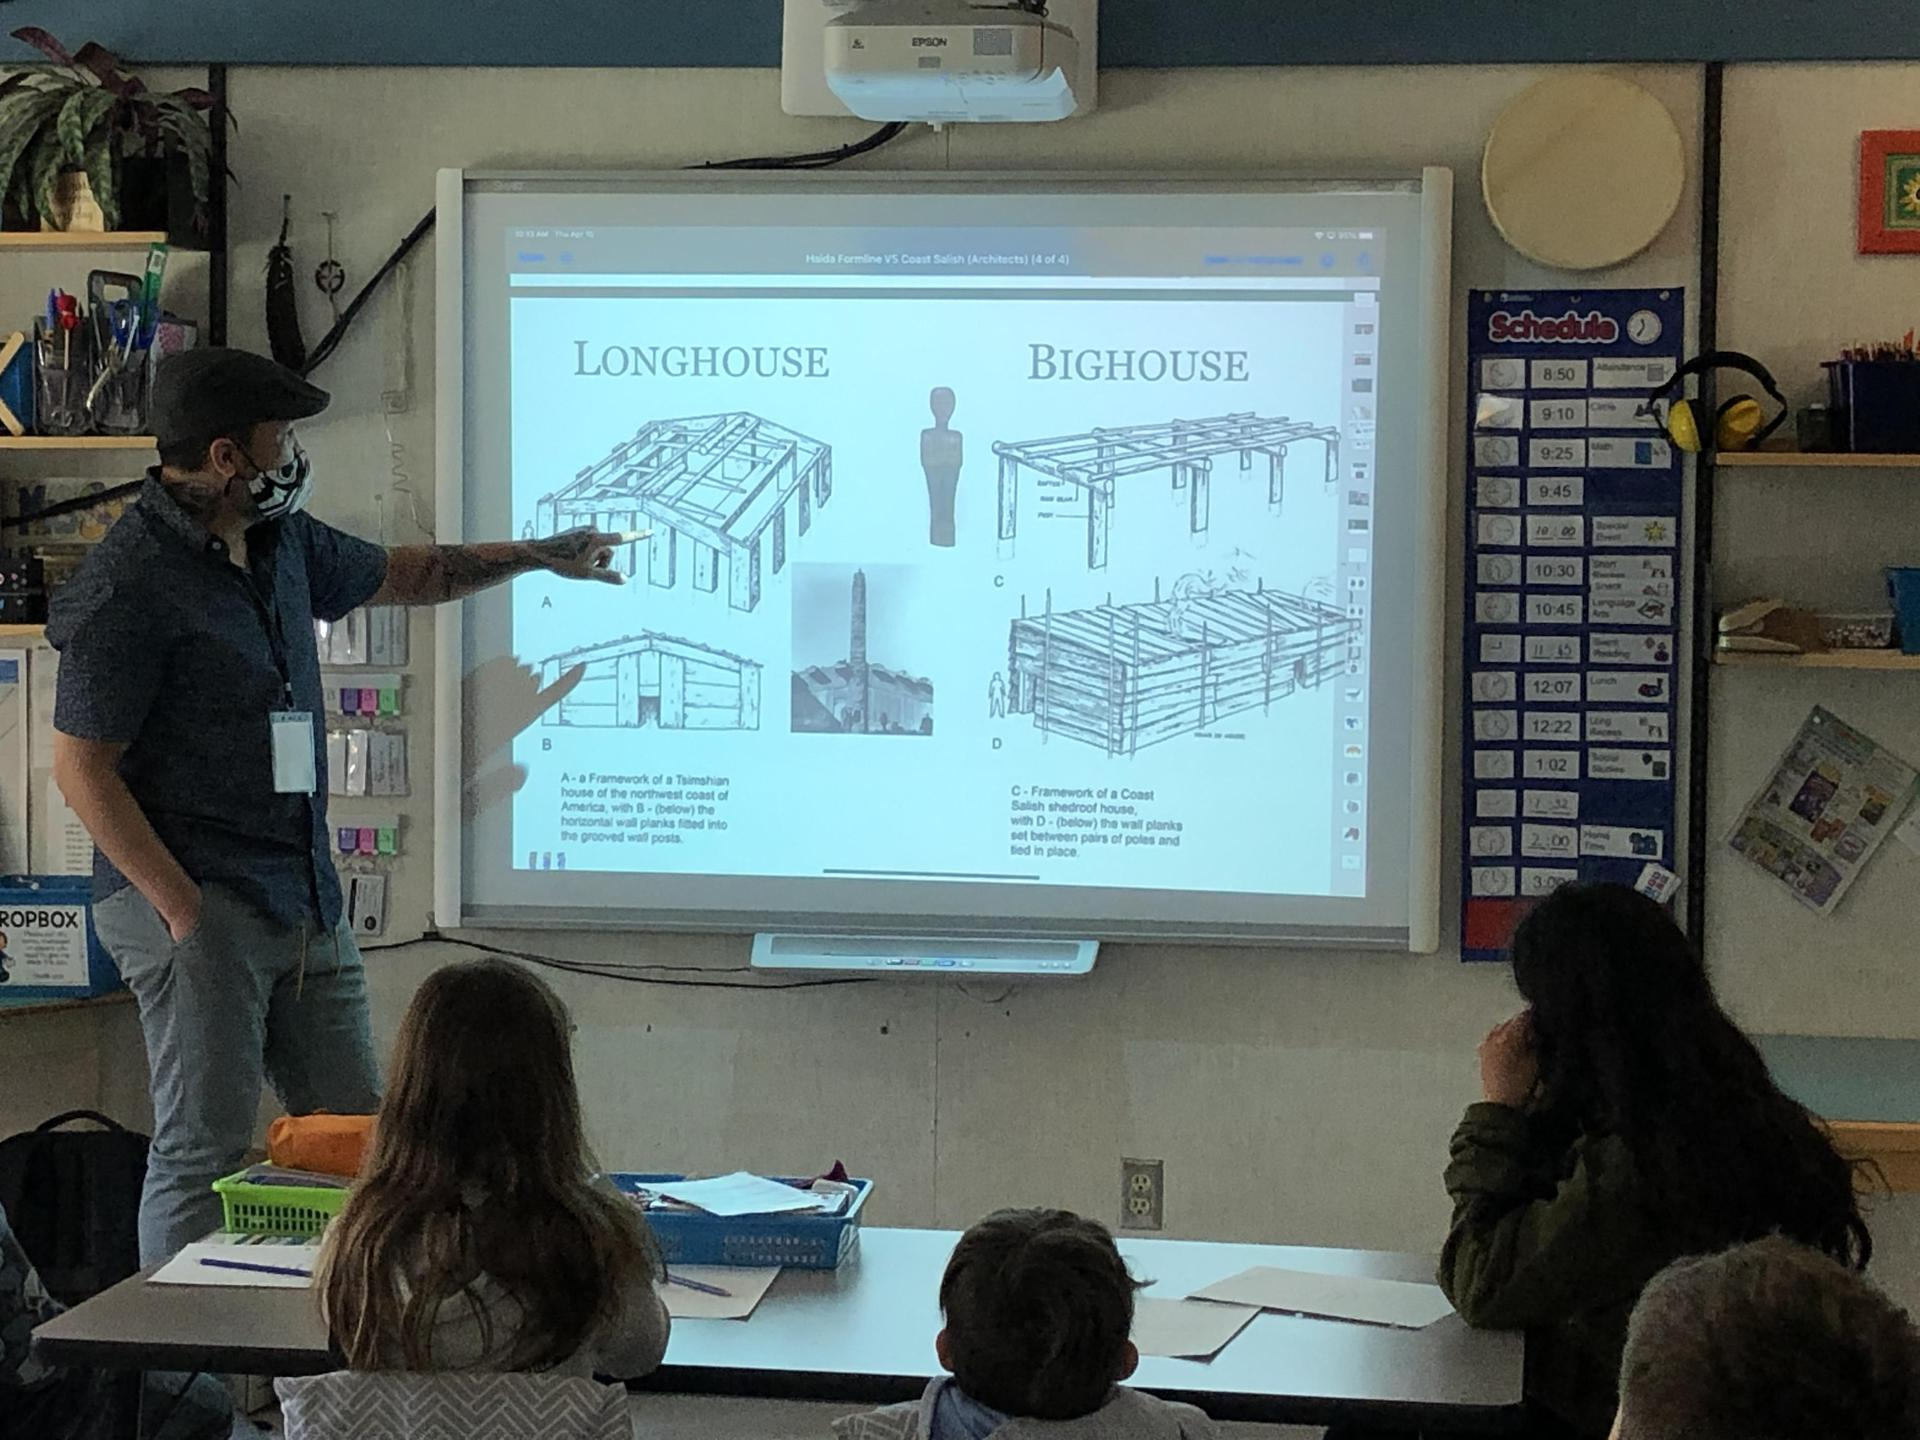 Cory Douglas showing the difference between longhouse and bighouse forms